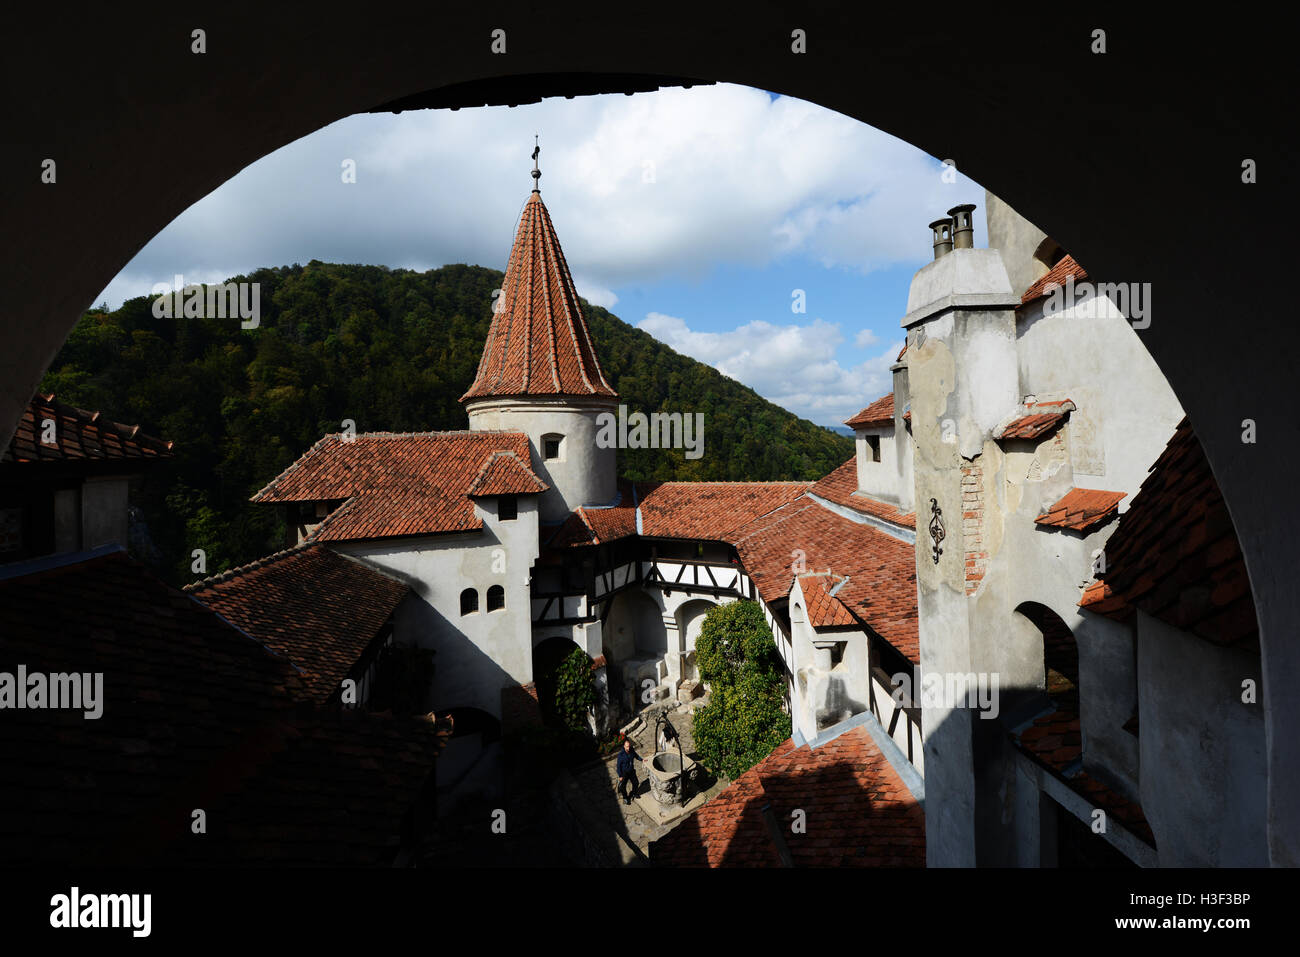 The beautiful Bran castle in Transylvania, Romania. - Stock Image